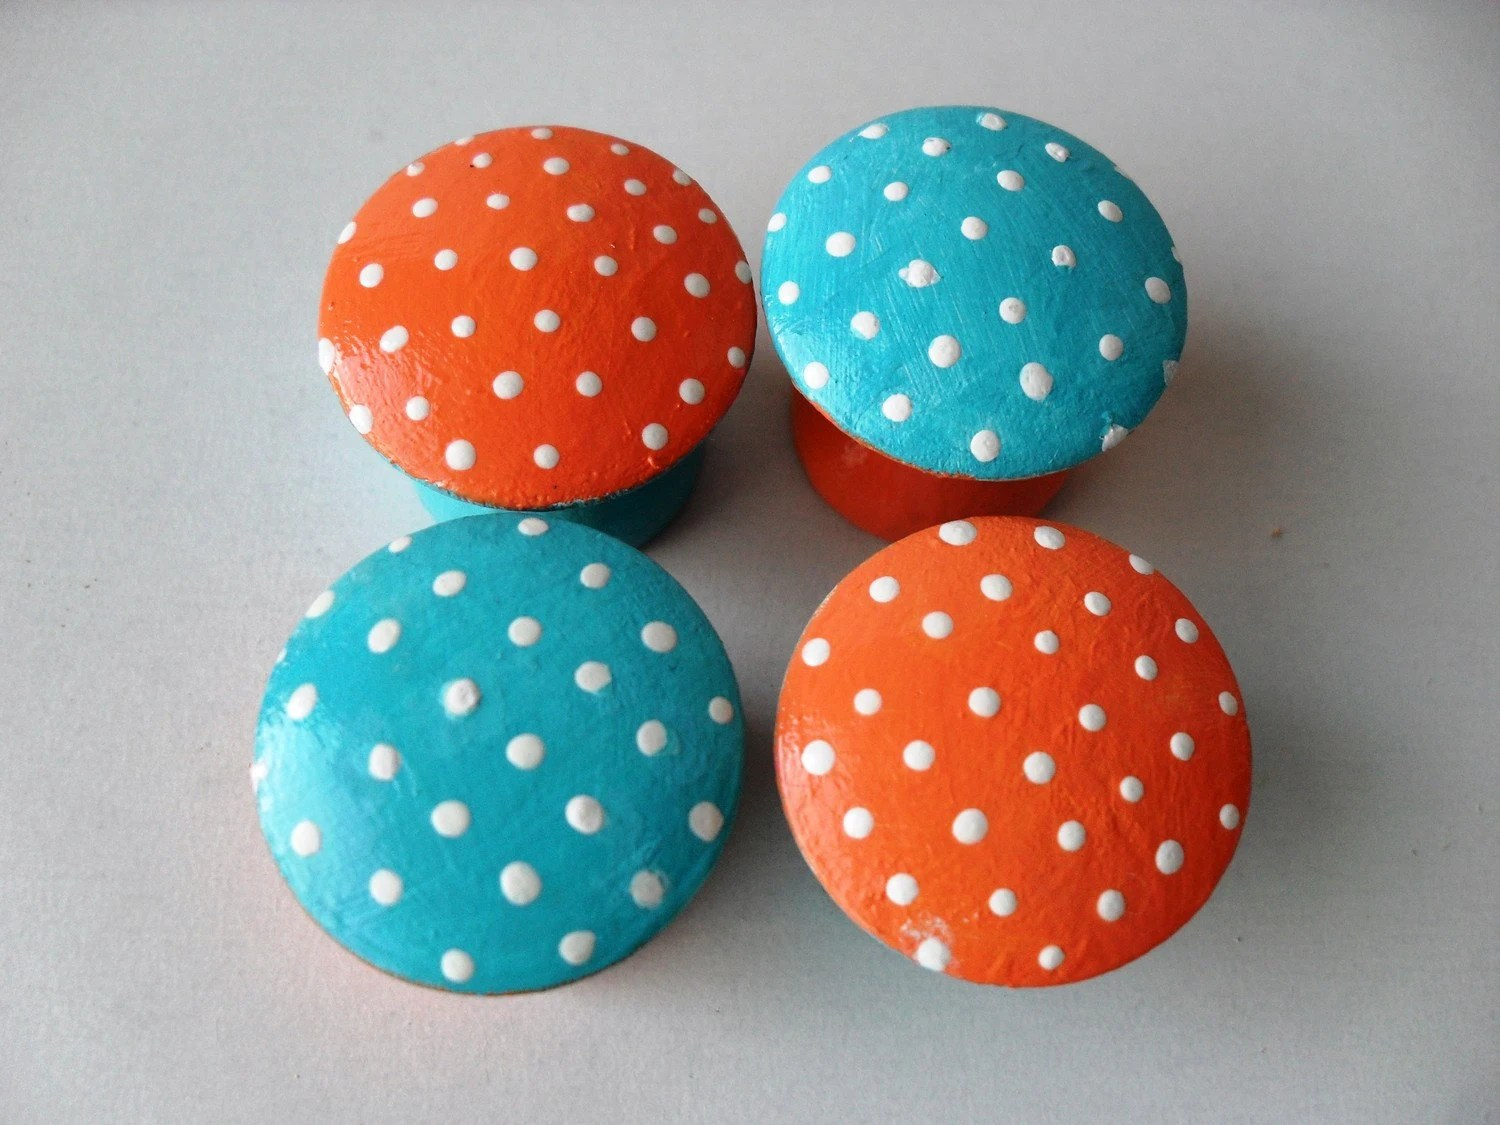 Set of 4 Hand Painted 1-inch Wooden Knobs